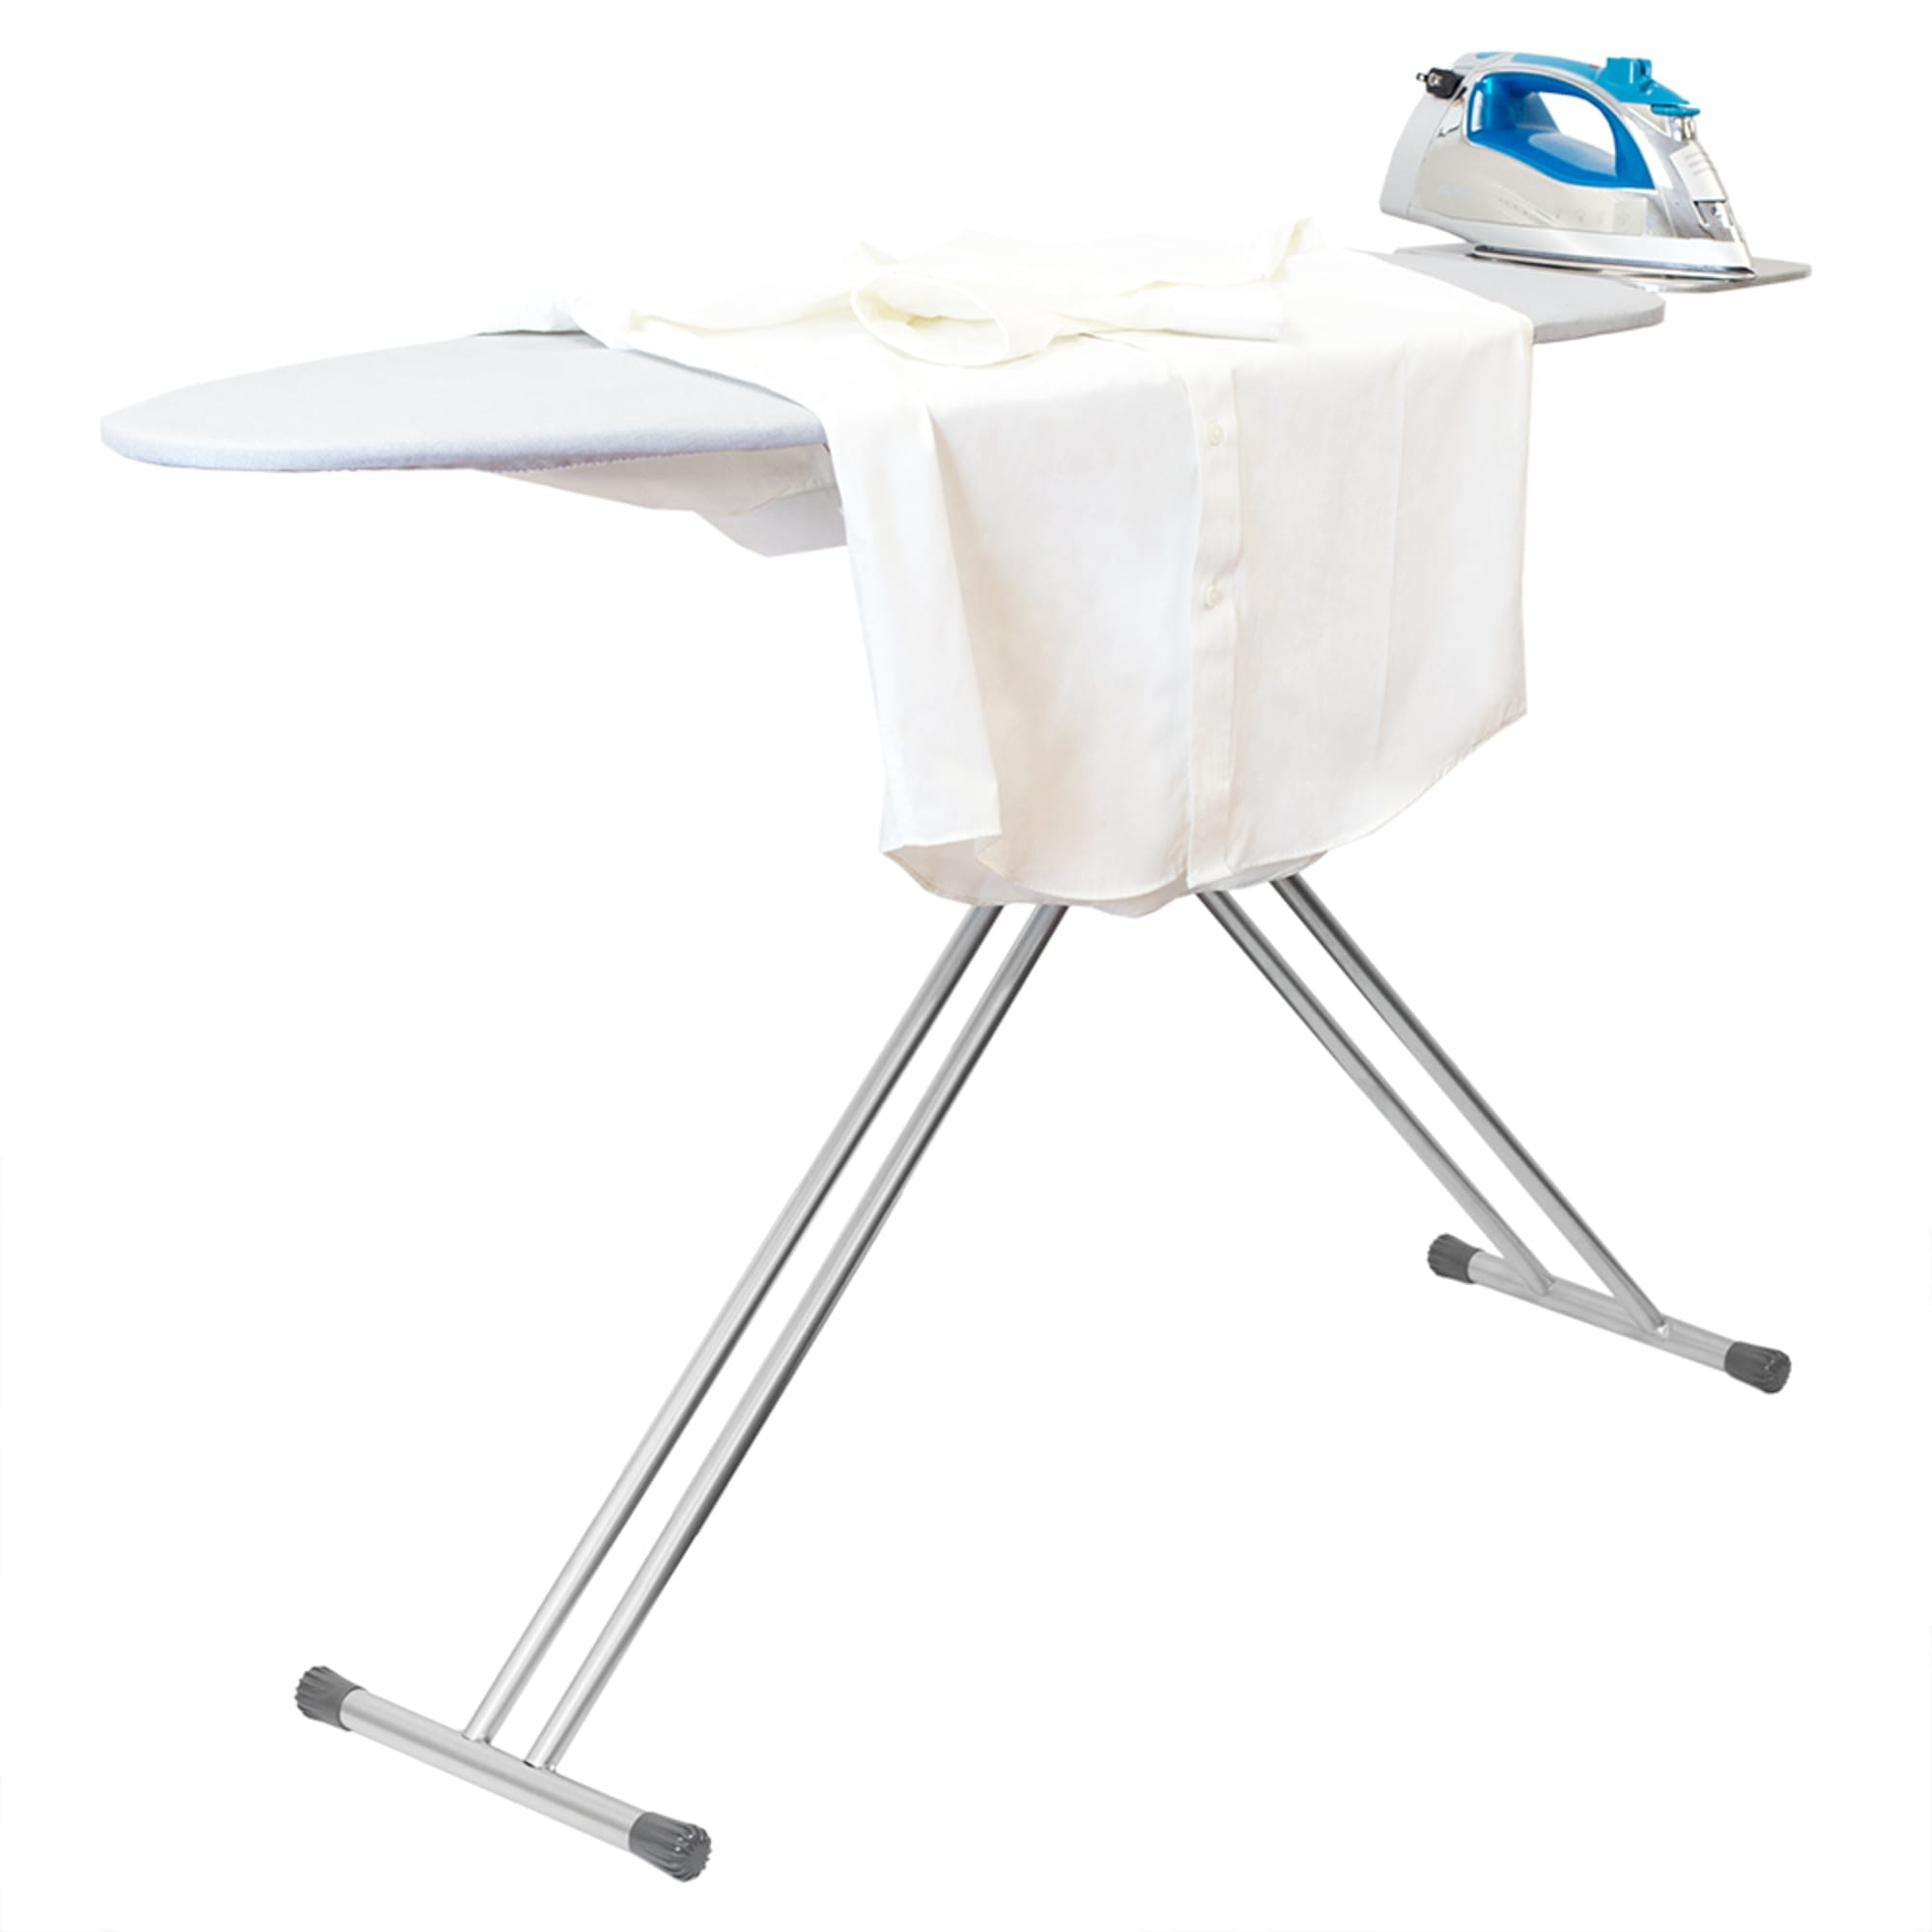 T-Leg Ironing Board with Iron Rest and Machine Washable Cotton Cover